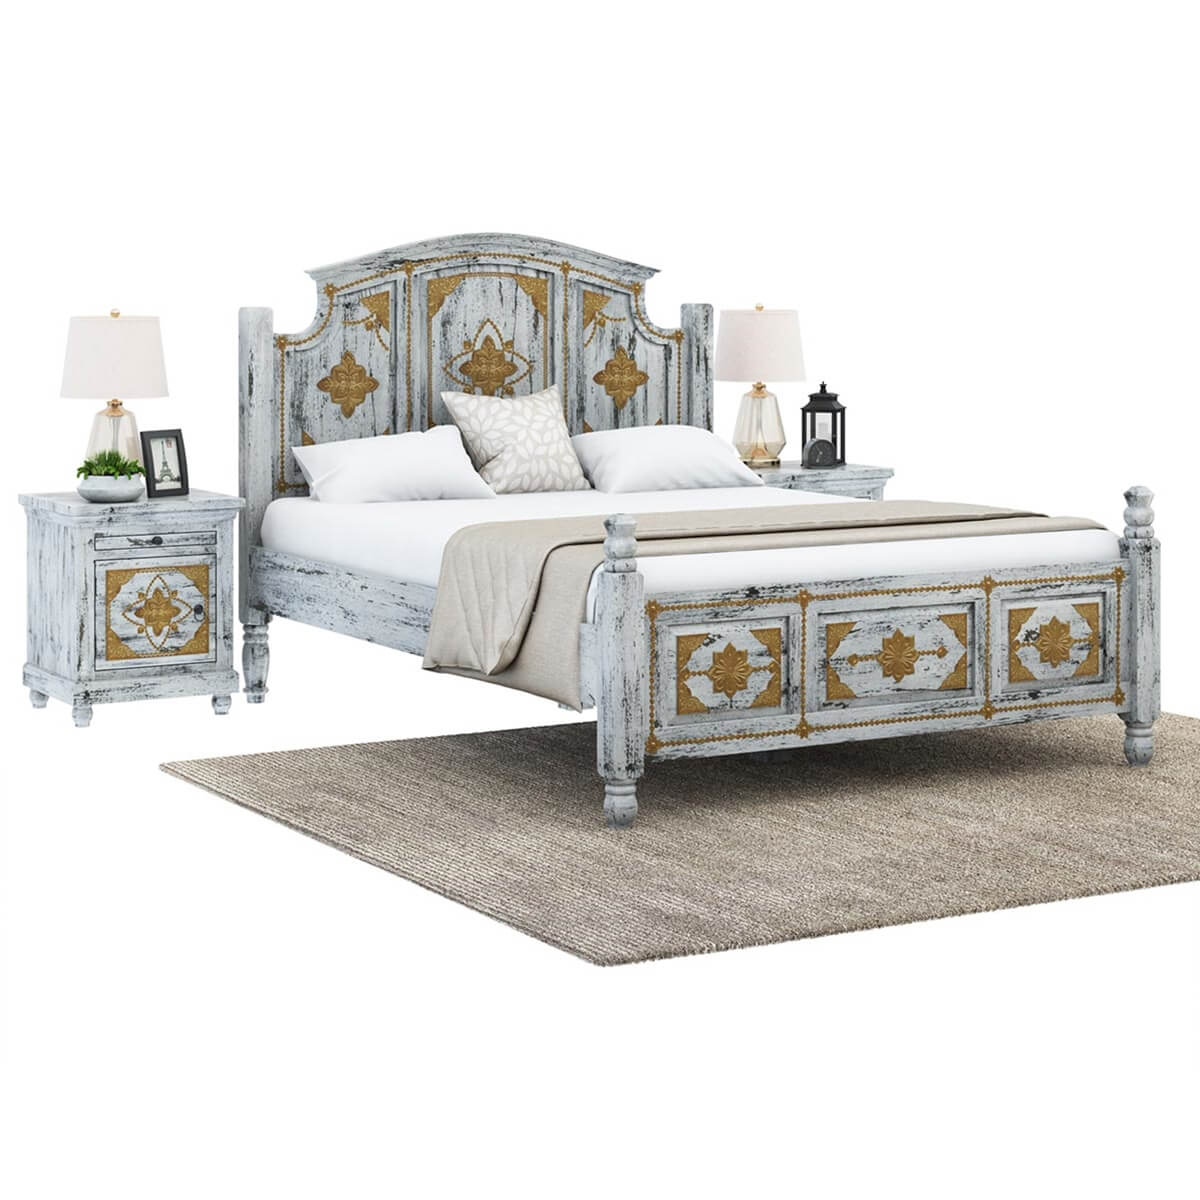 tudor distressed mango wood brass inlay platform bed frame - Distressed Bed Frame